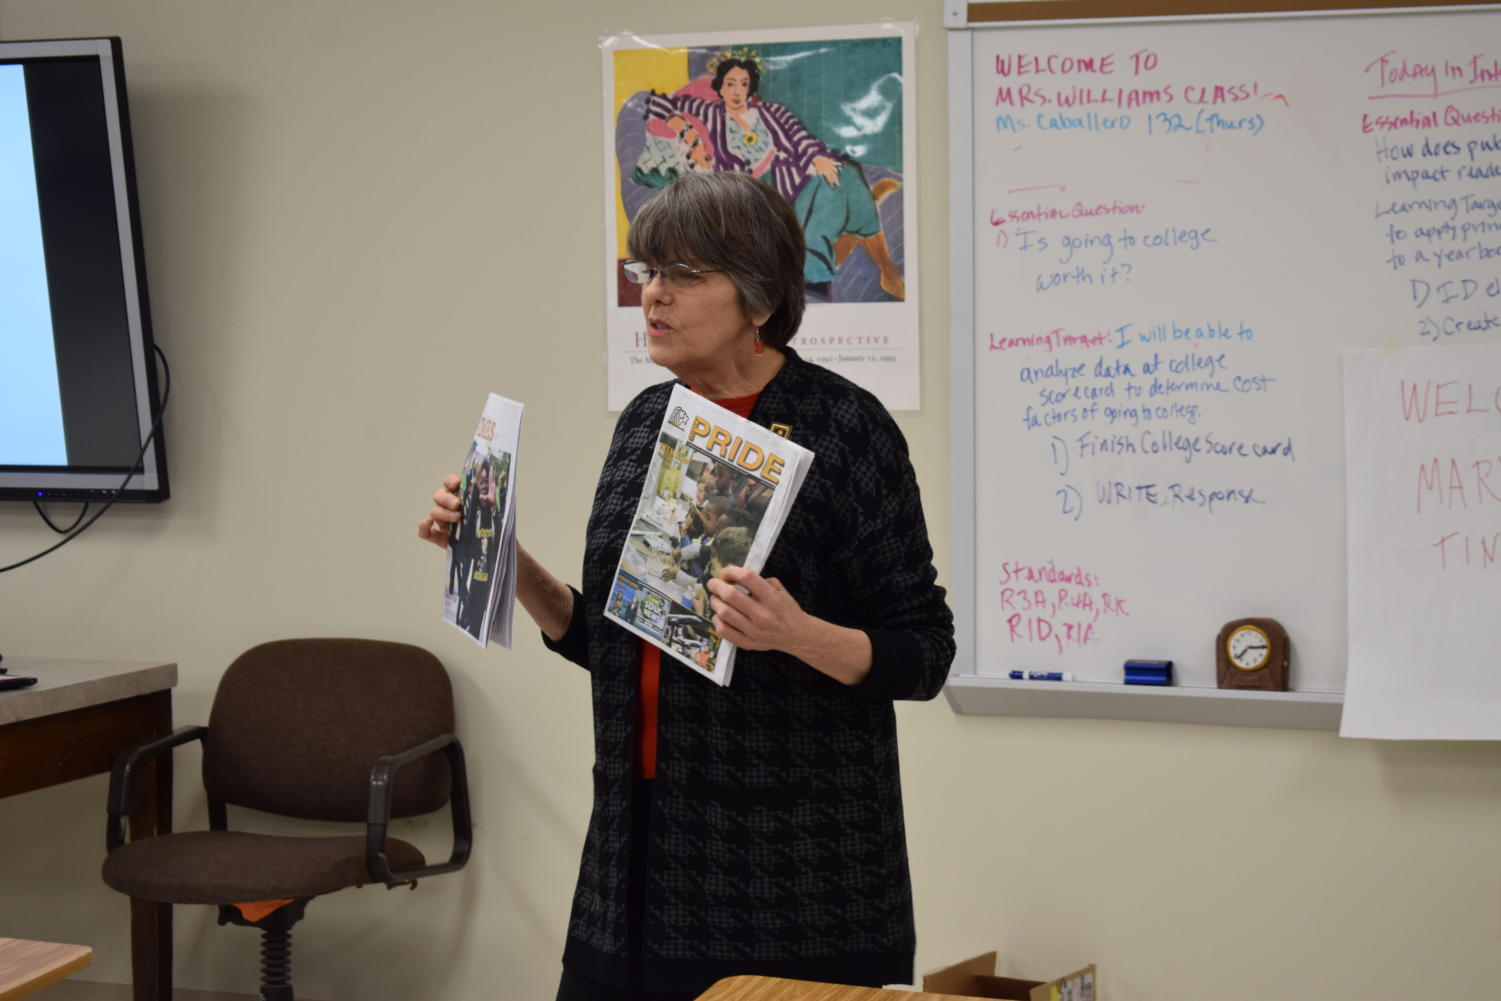 Mary Beth Tinker, free speech activist and U. City alum, speaks to students about their rights.